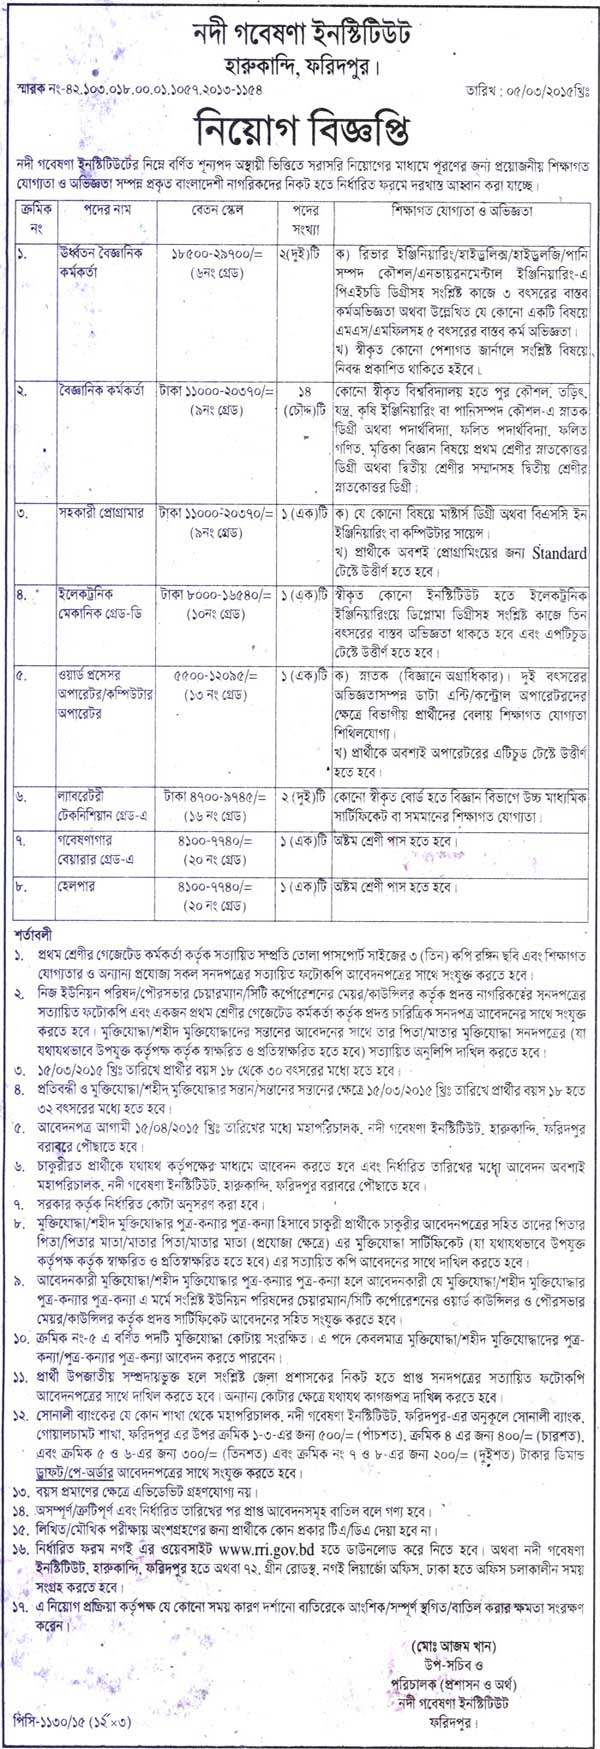 River Research Institute Jobs Circular 2015 In Bangladesh